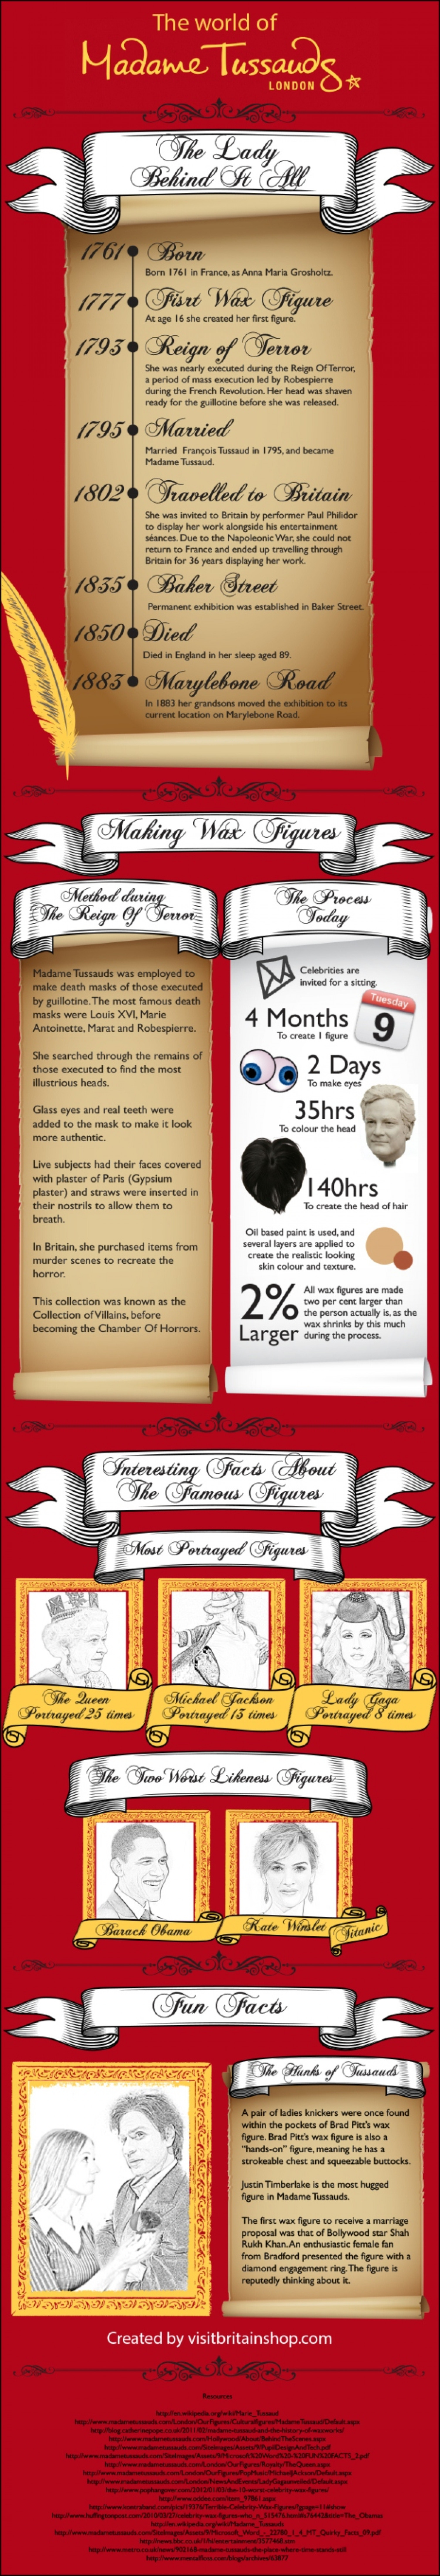 The World of Madame Tussauds London Infographic